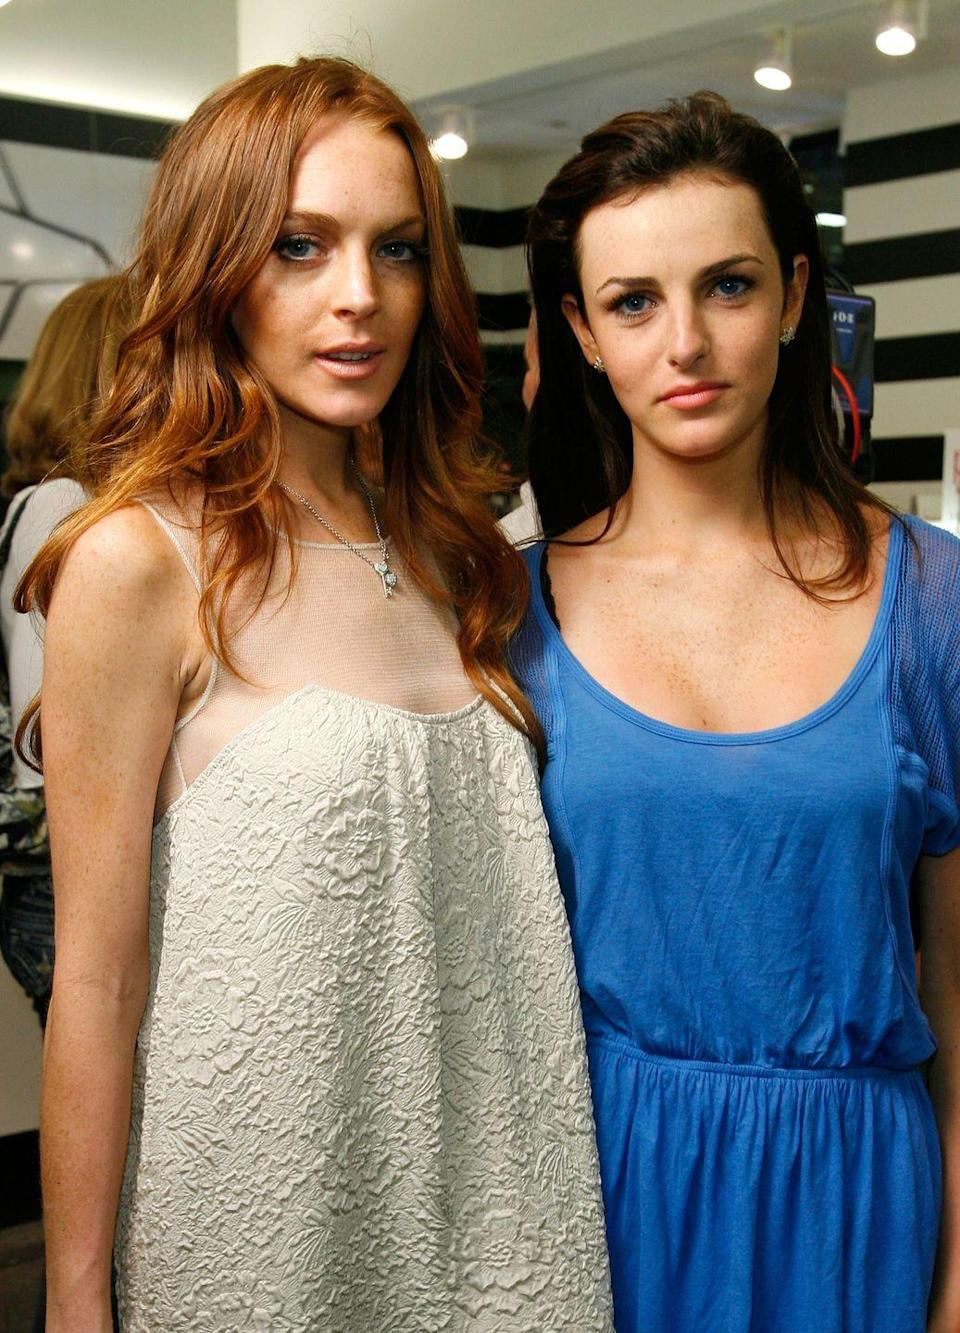 <p>Lindsay Lohan's famous red hair wasn't passed down to her sister, Ali, who has always been a dark brunette. But there's no denying their resemblance, despite Ali being 10 years younger. </p>